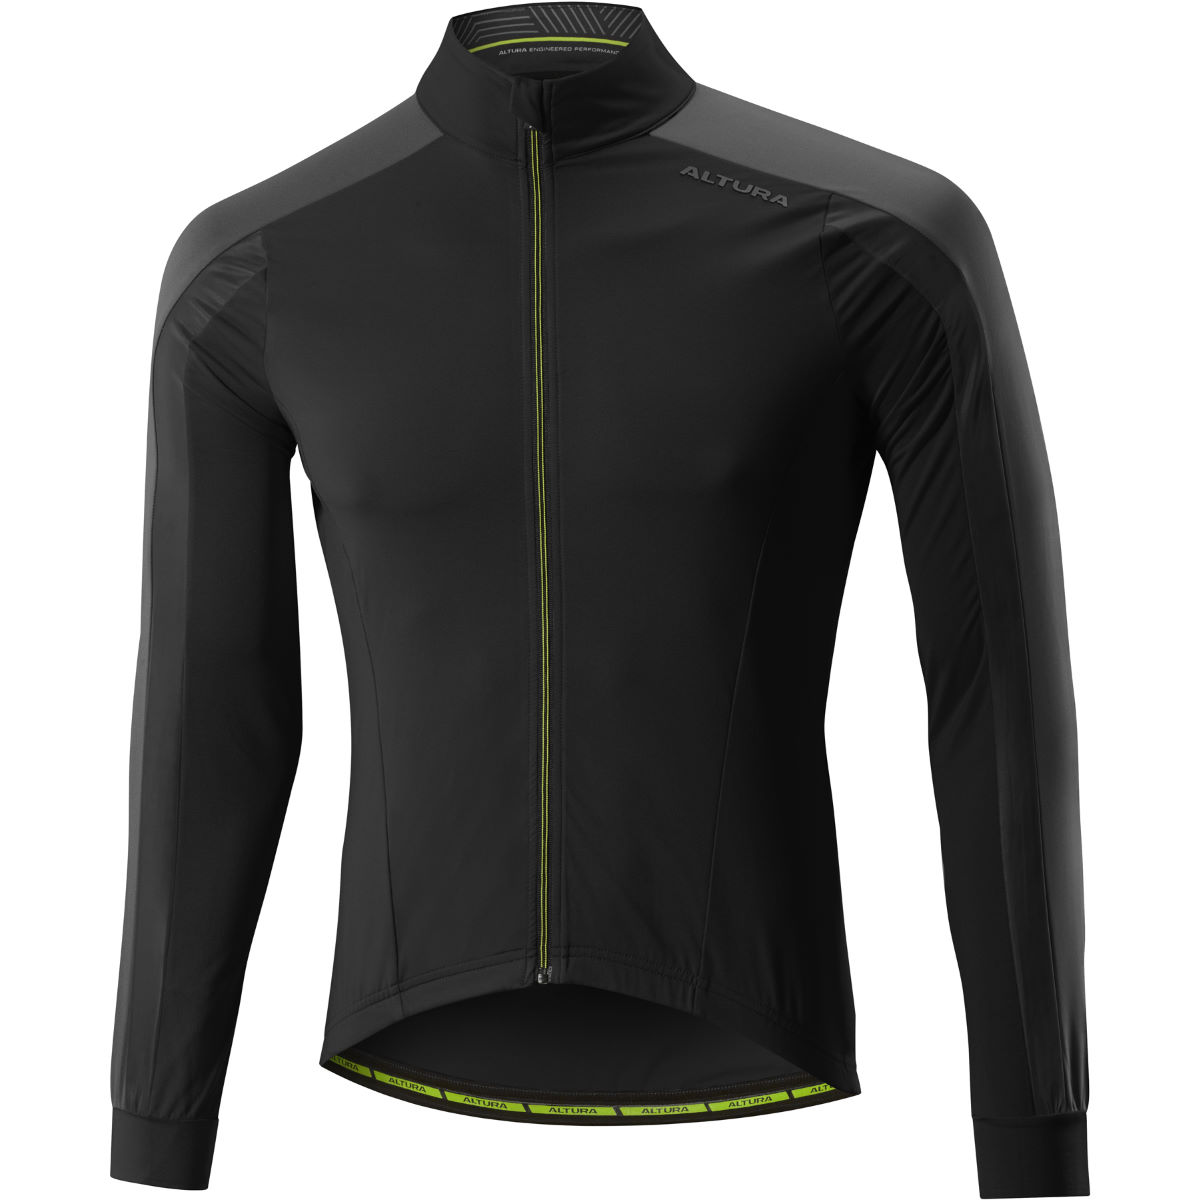 Maillot Altura NV2 Thermo (manches longues) - XL Noir Maillots